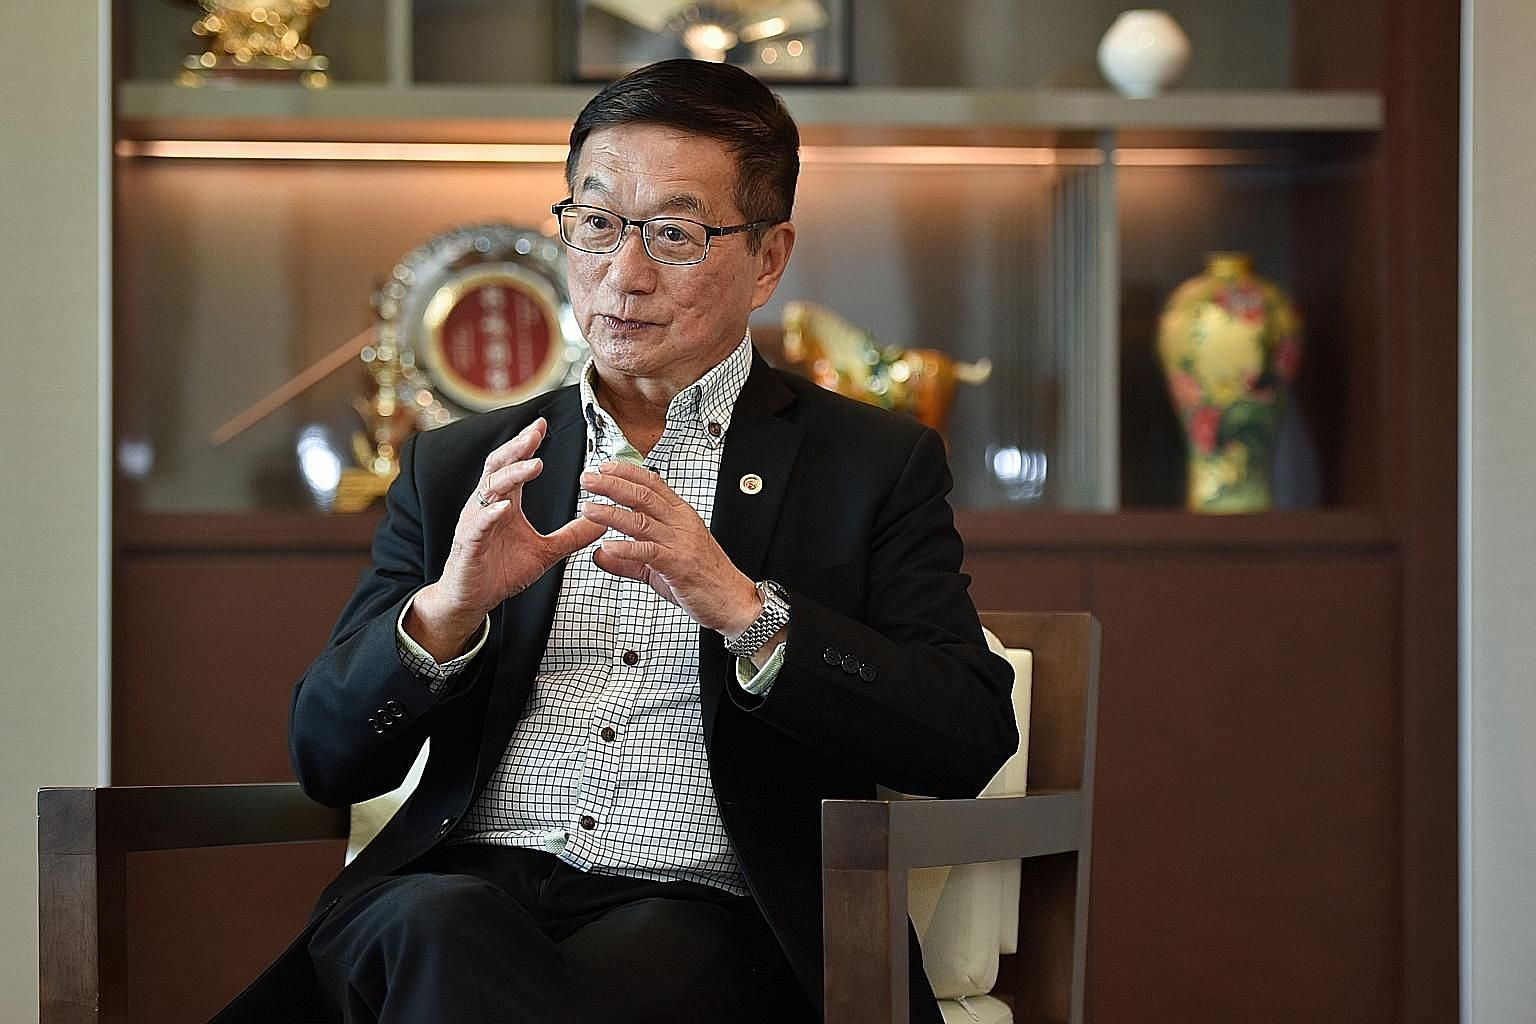 Singapore Chinese Chamber of Commerce and Industry president Roland Ng says preserving family businesses is one of the chamber's priorities for the next three years.